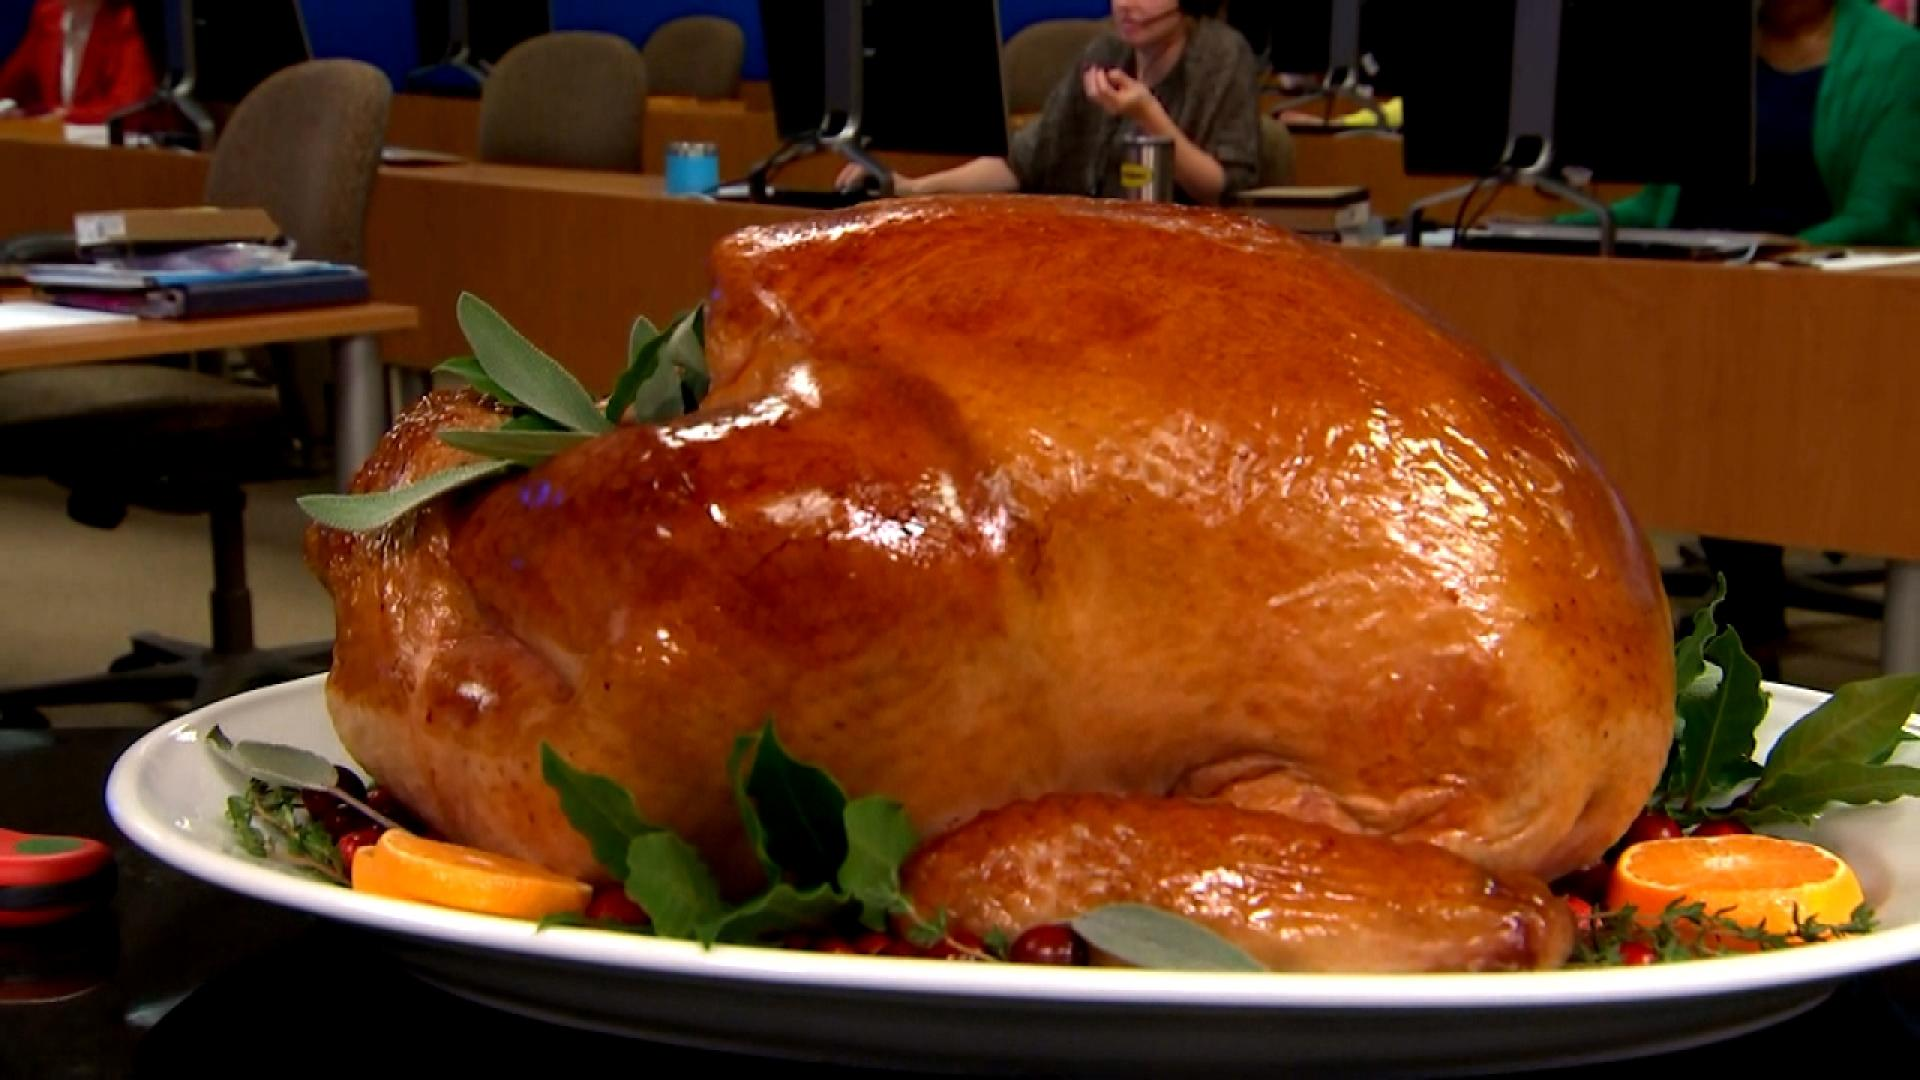 How Long Does It Take To Defrost A Turkey Plus Other Kitchen Tips